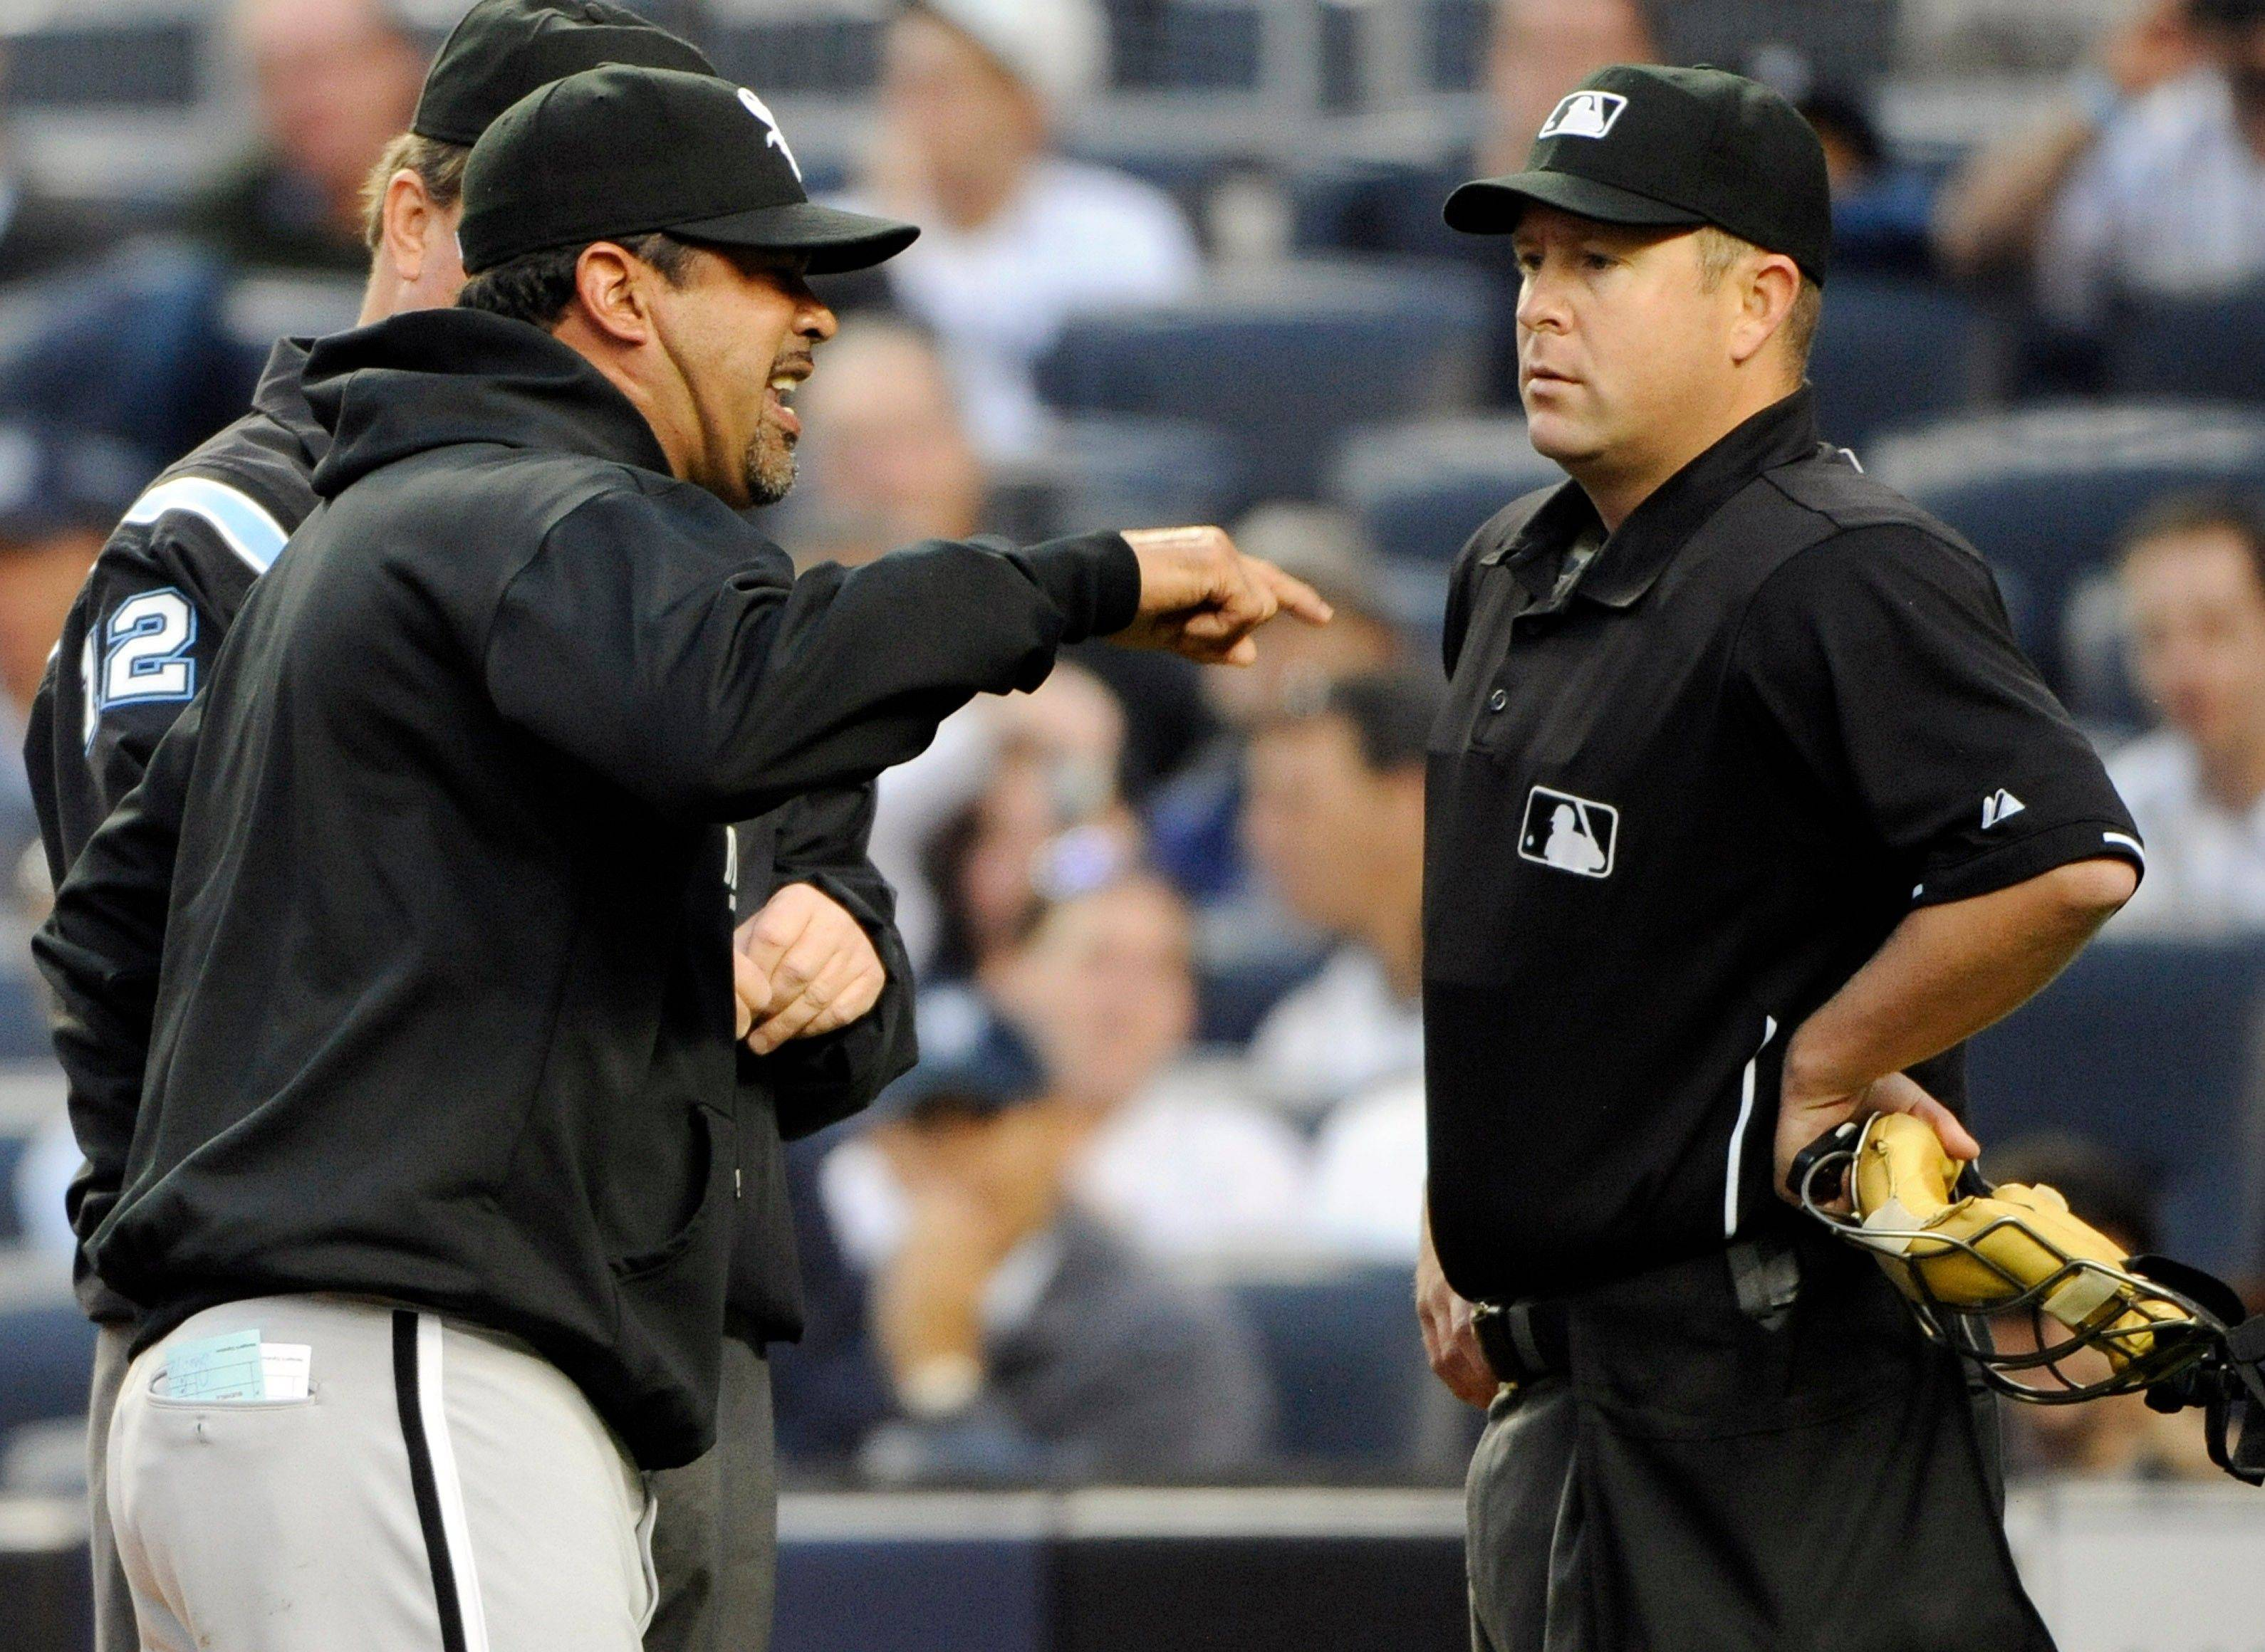 Chicago White Sox mamager Ozzie Guillen, left, argues with home plate umpire Todd Tichenor during the first inning of a baseball game against the New York Yankees, Wednesday, April 27, 2011, at Yankee Stadium in New York.